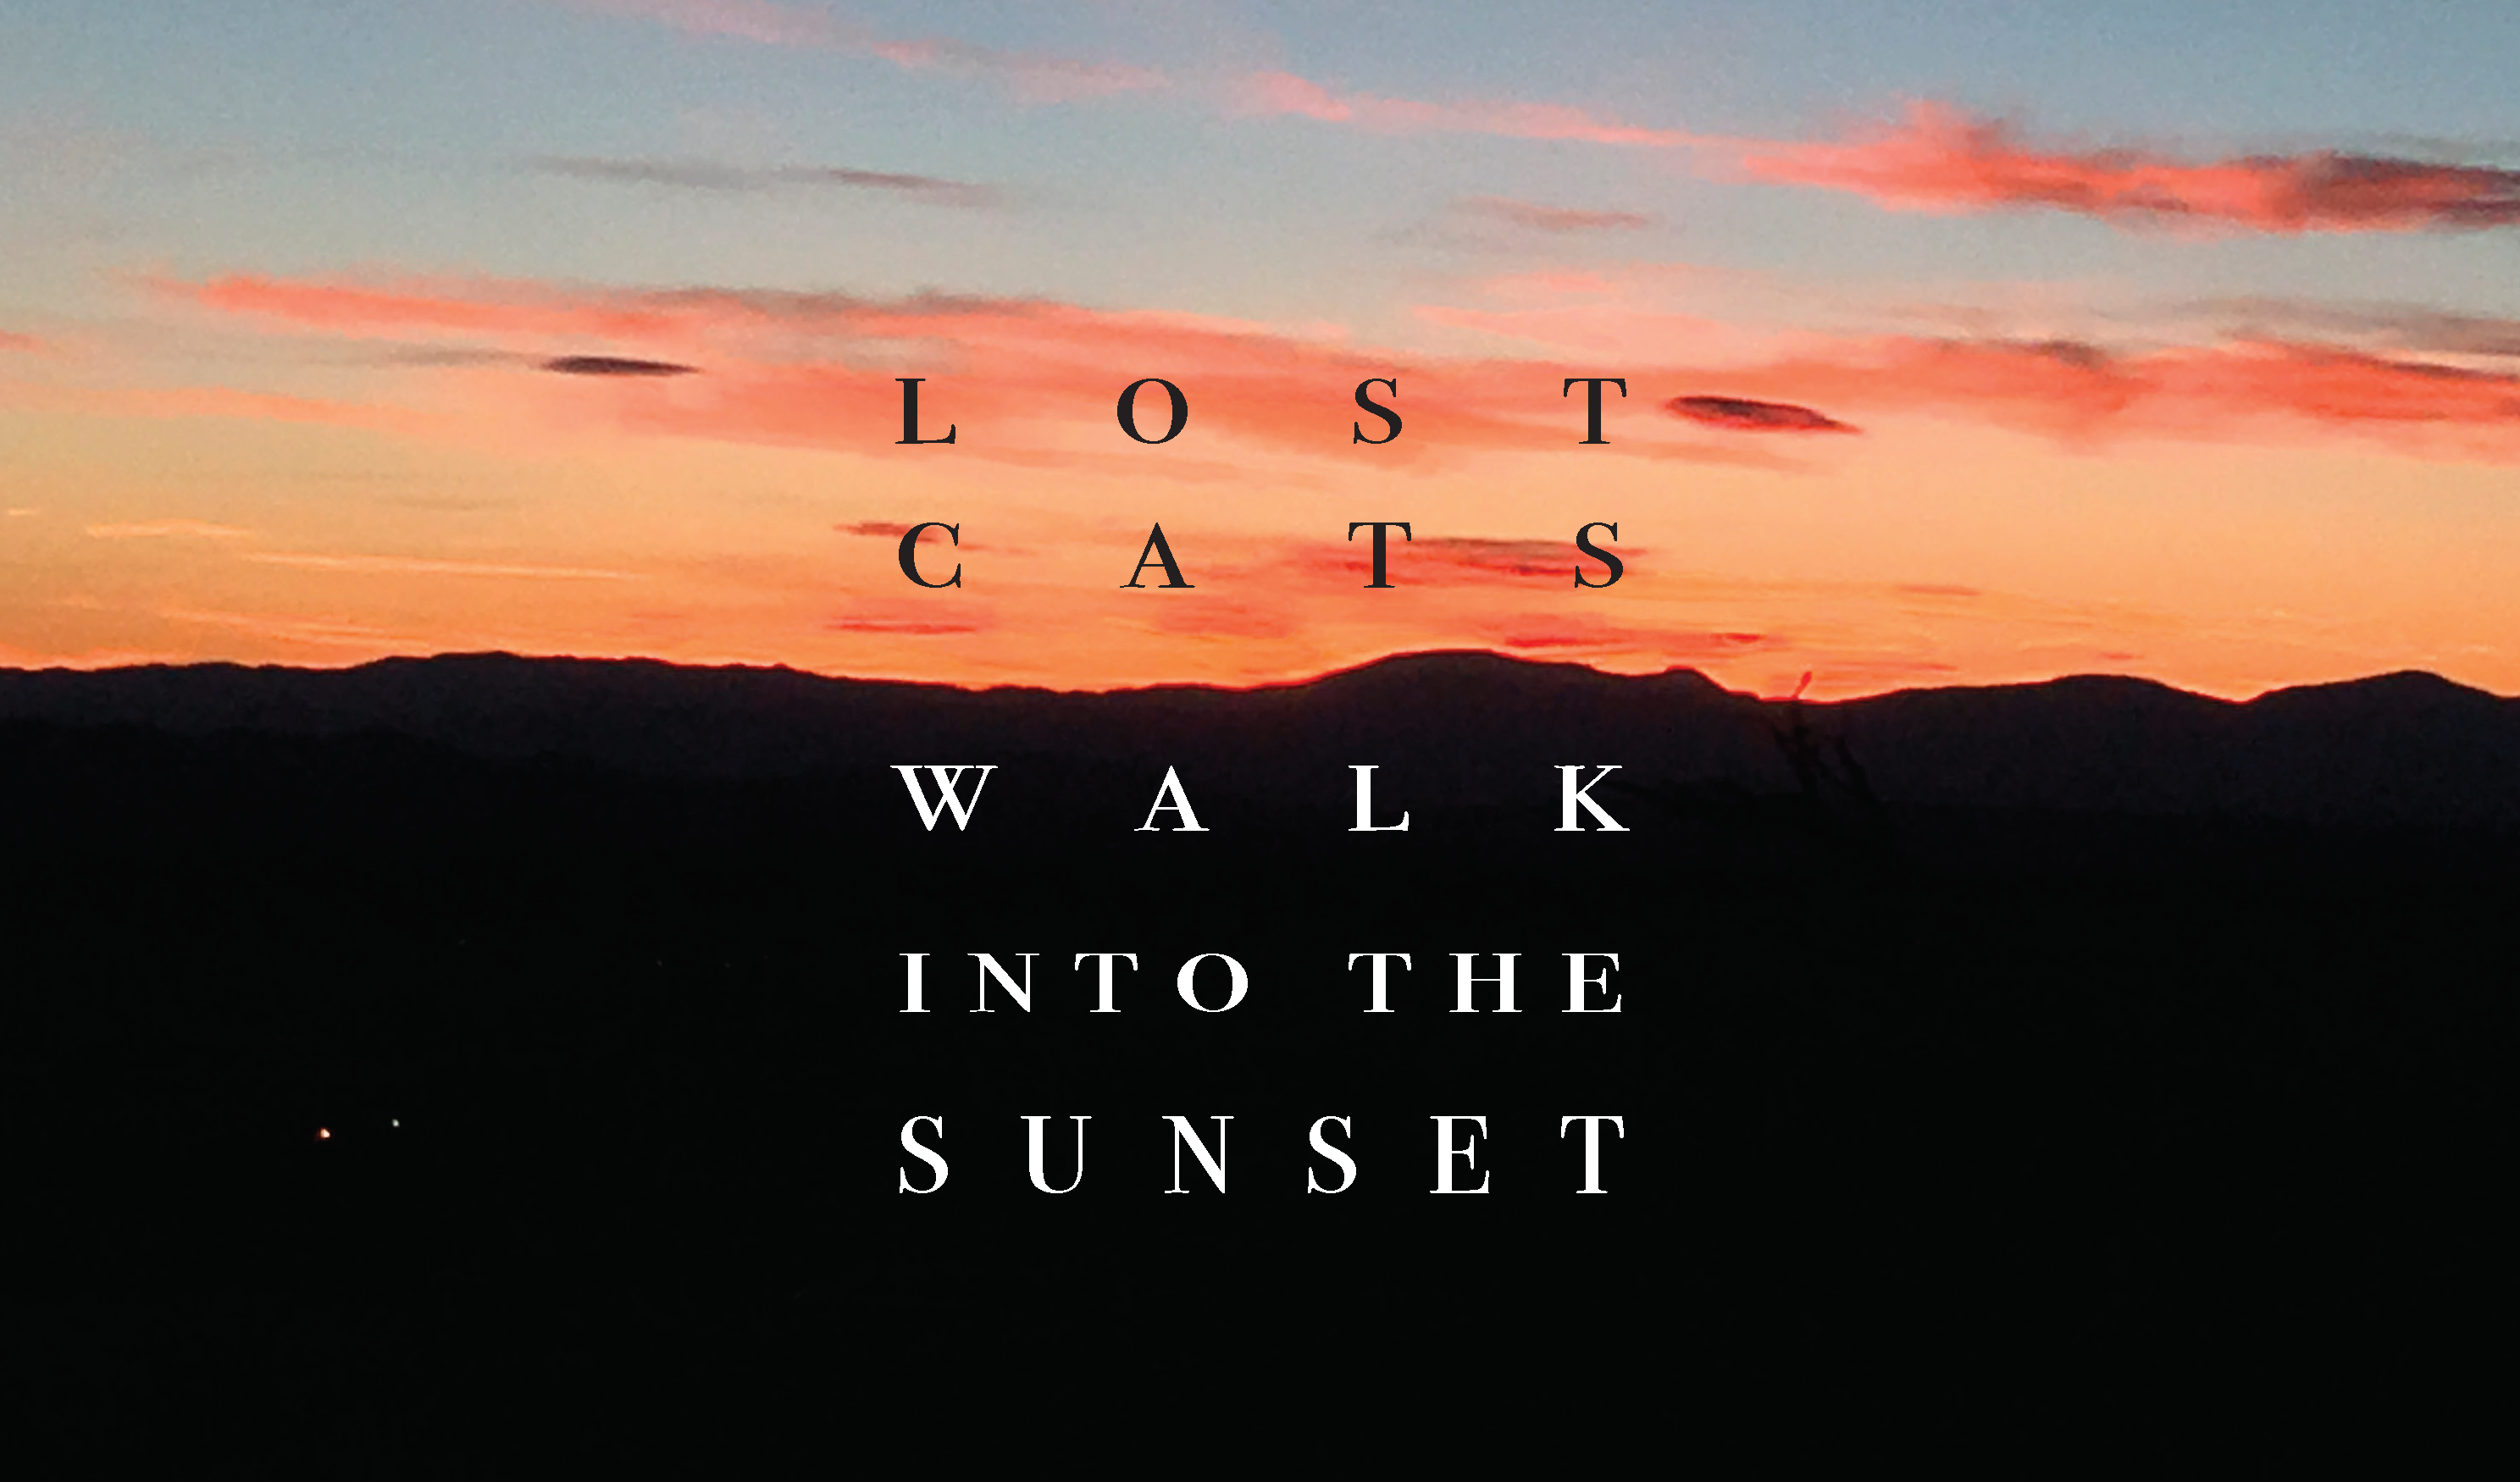 lost cats walk into the sunset